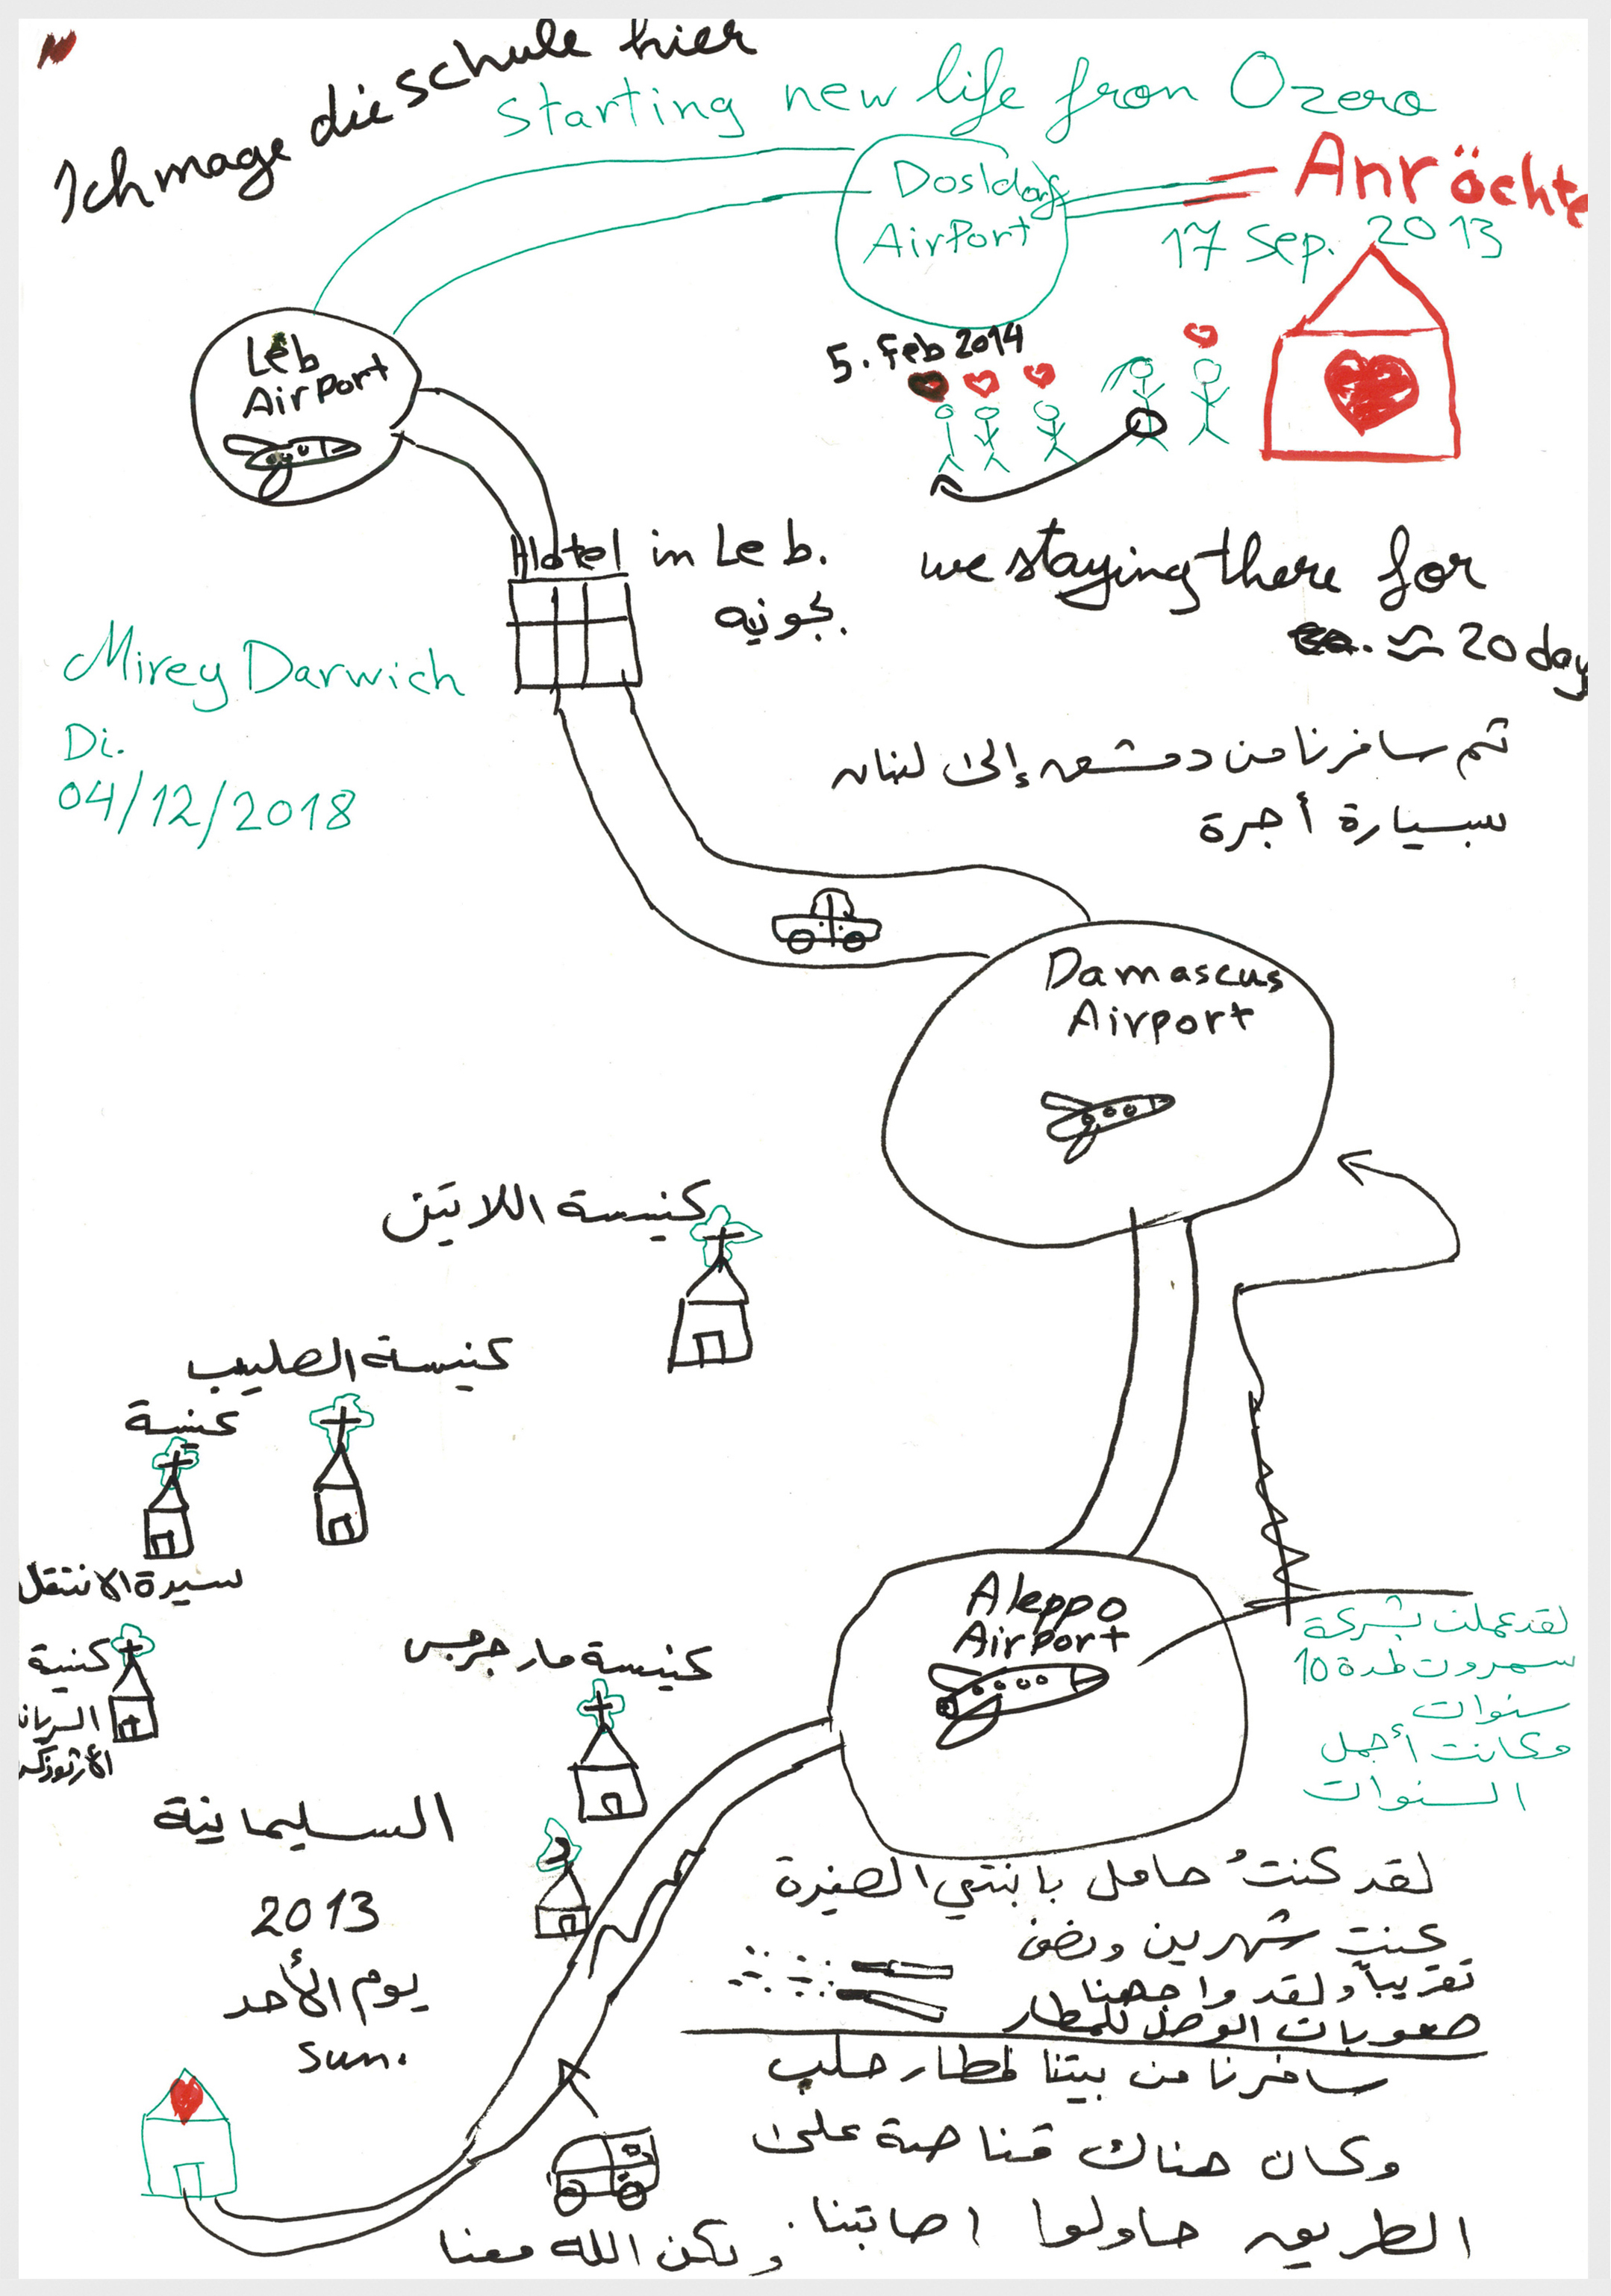 Mirey Darwich drew her journey from Aleppo, Syria, which she fled with her family. They now live in Anröchte, Germany